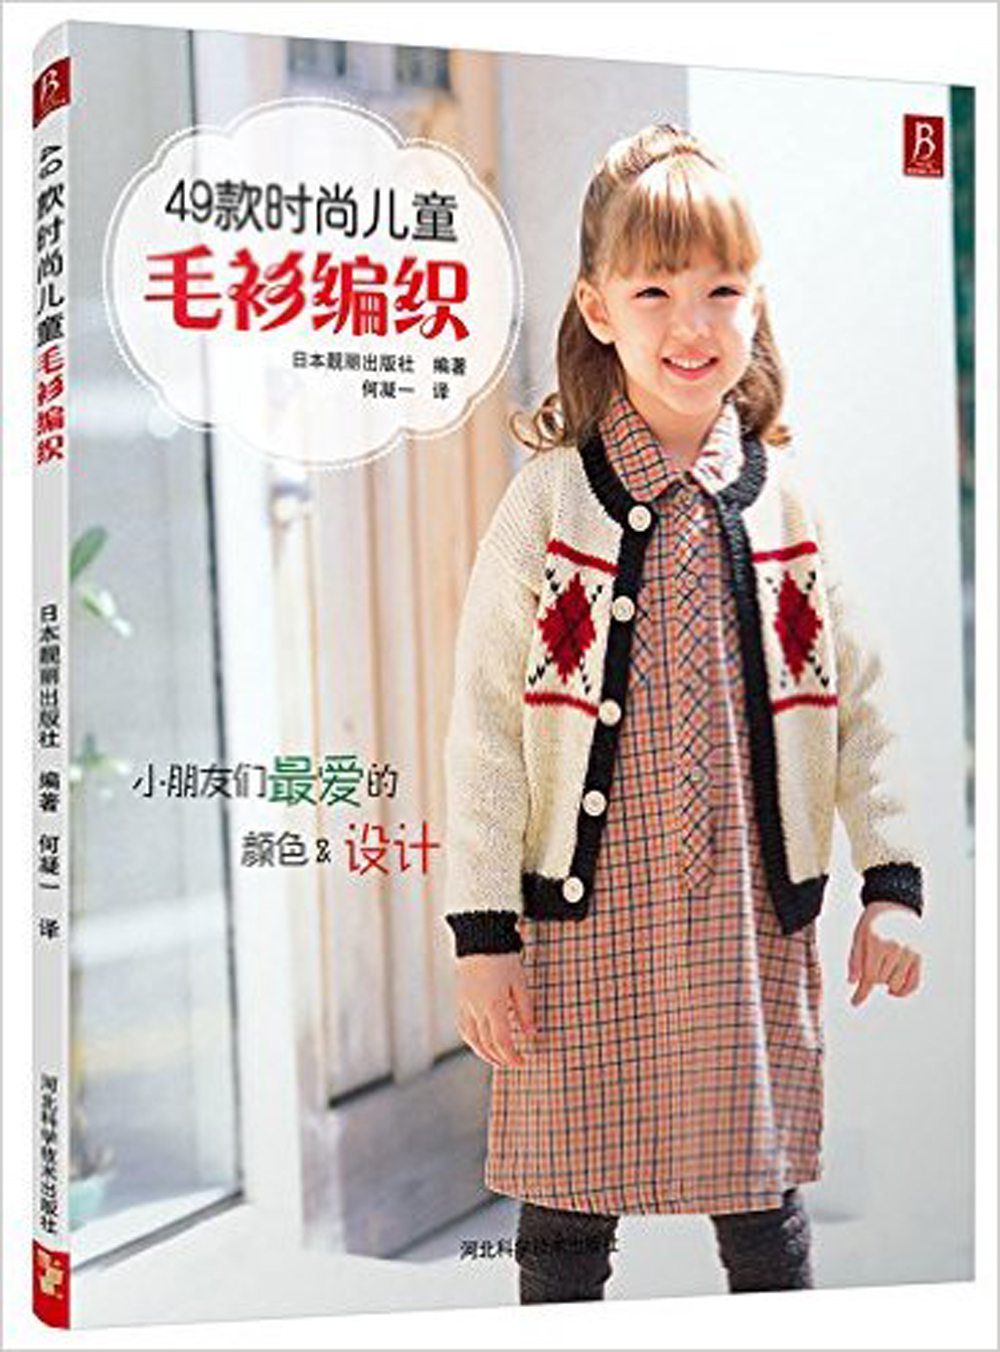 Fashion Children's Sweater Knitting Book With 49 Different Pattern